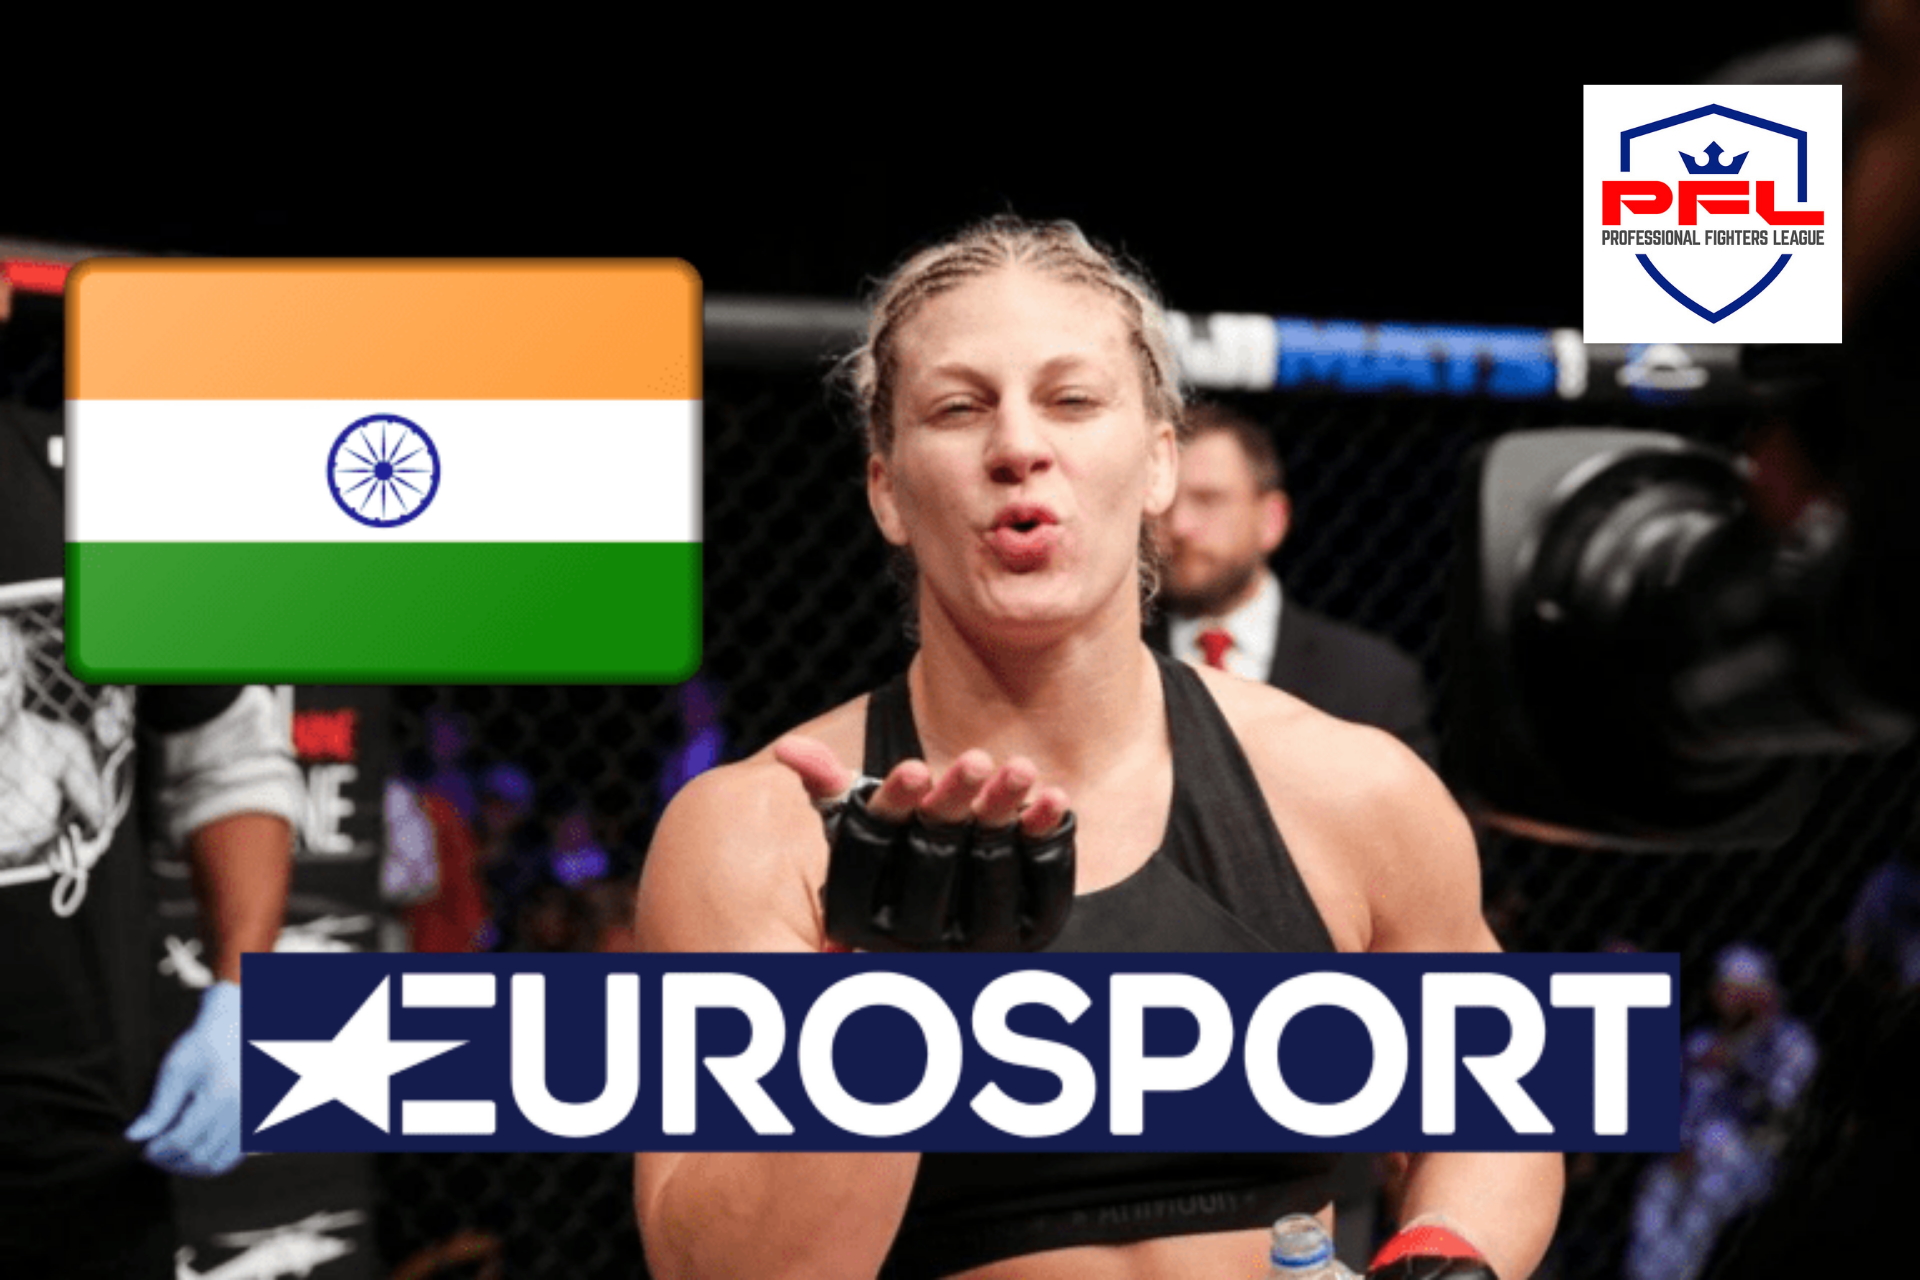 PFL-Professional Fighters League to be broadcast live in India on Eurosport - PFL